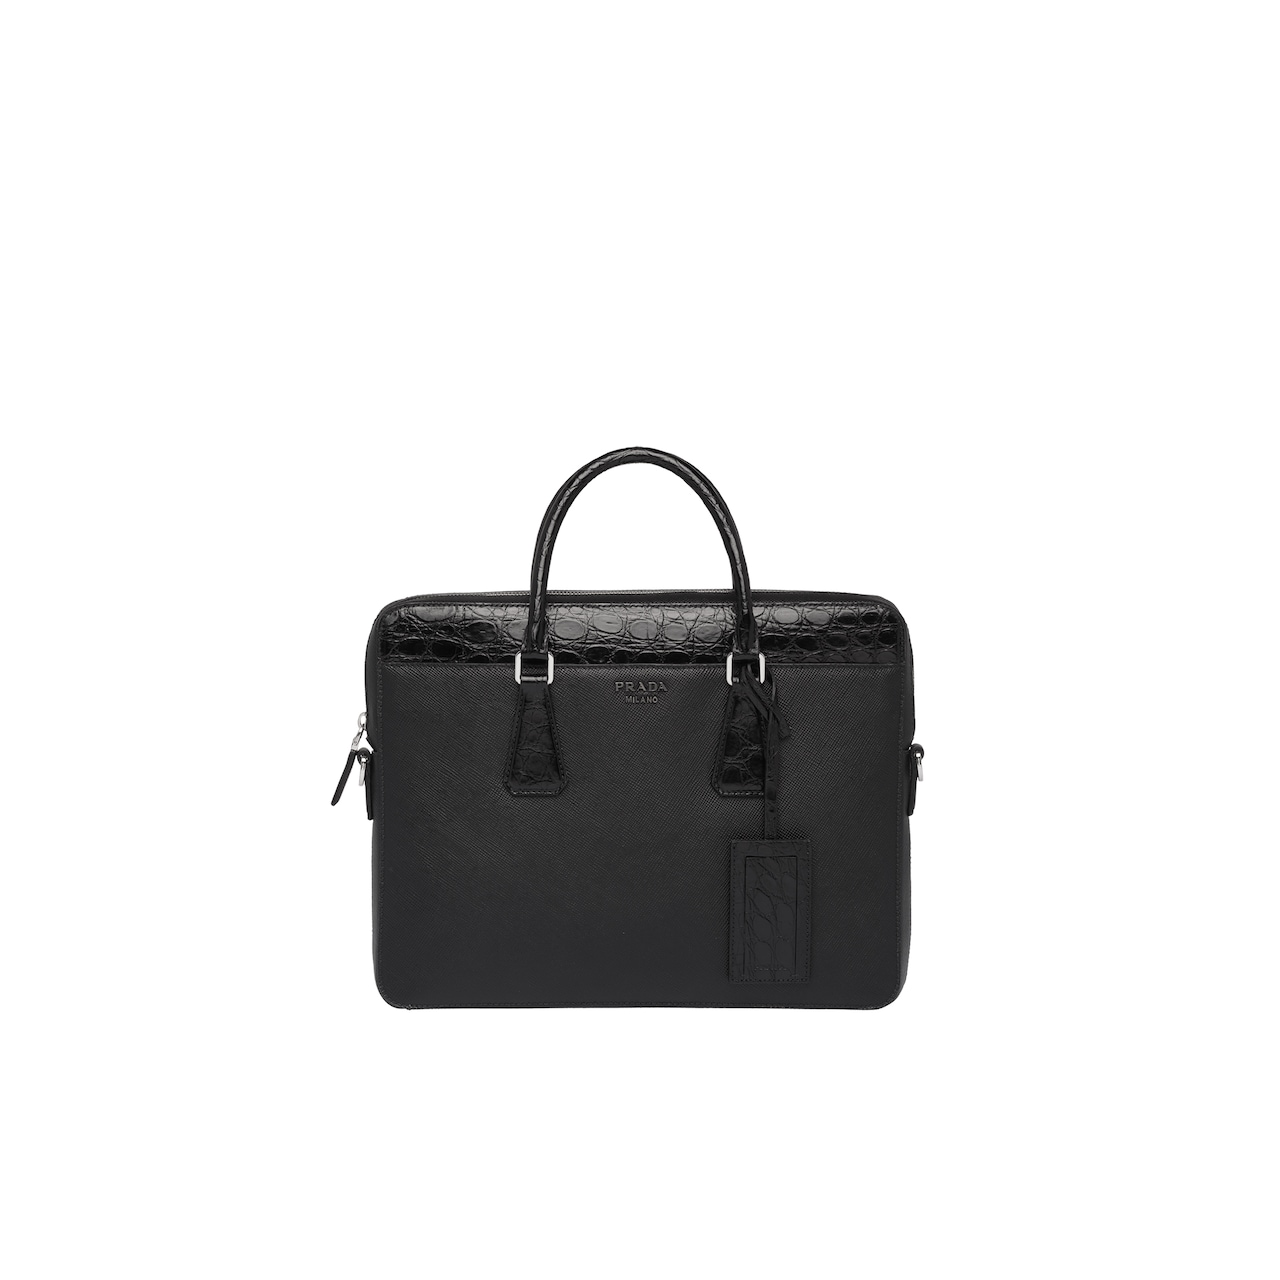 Prada Saffiano leather briefcase 1